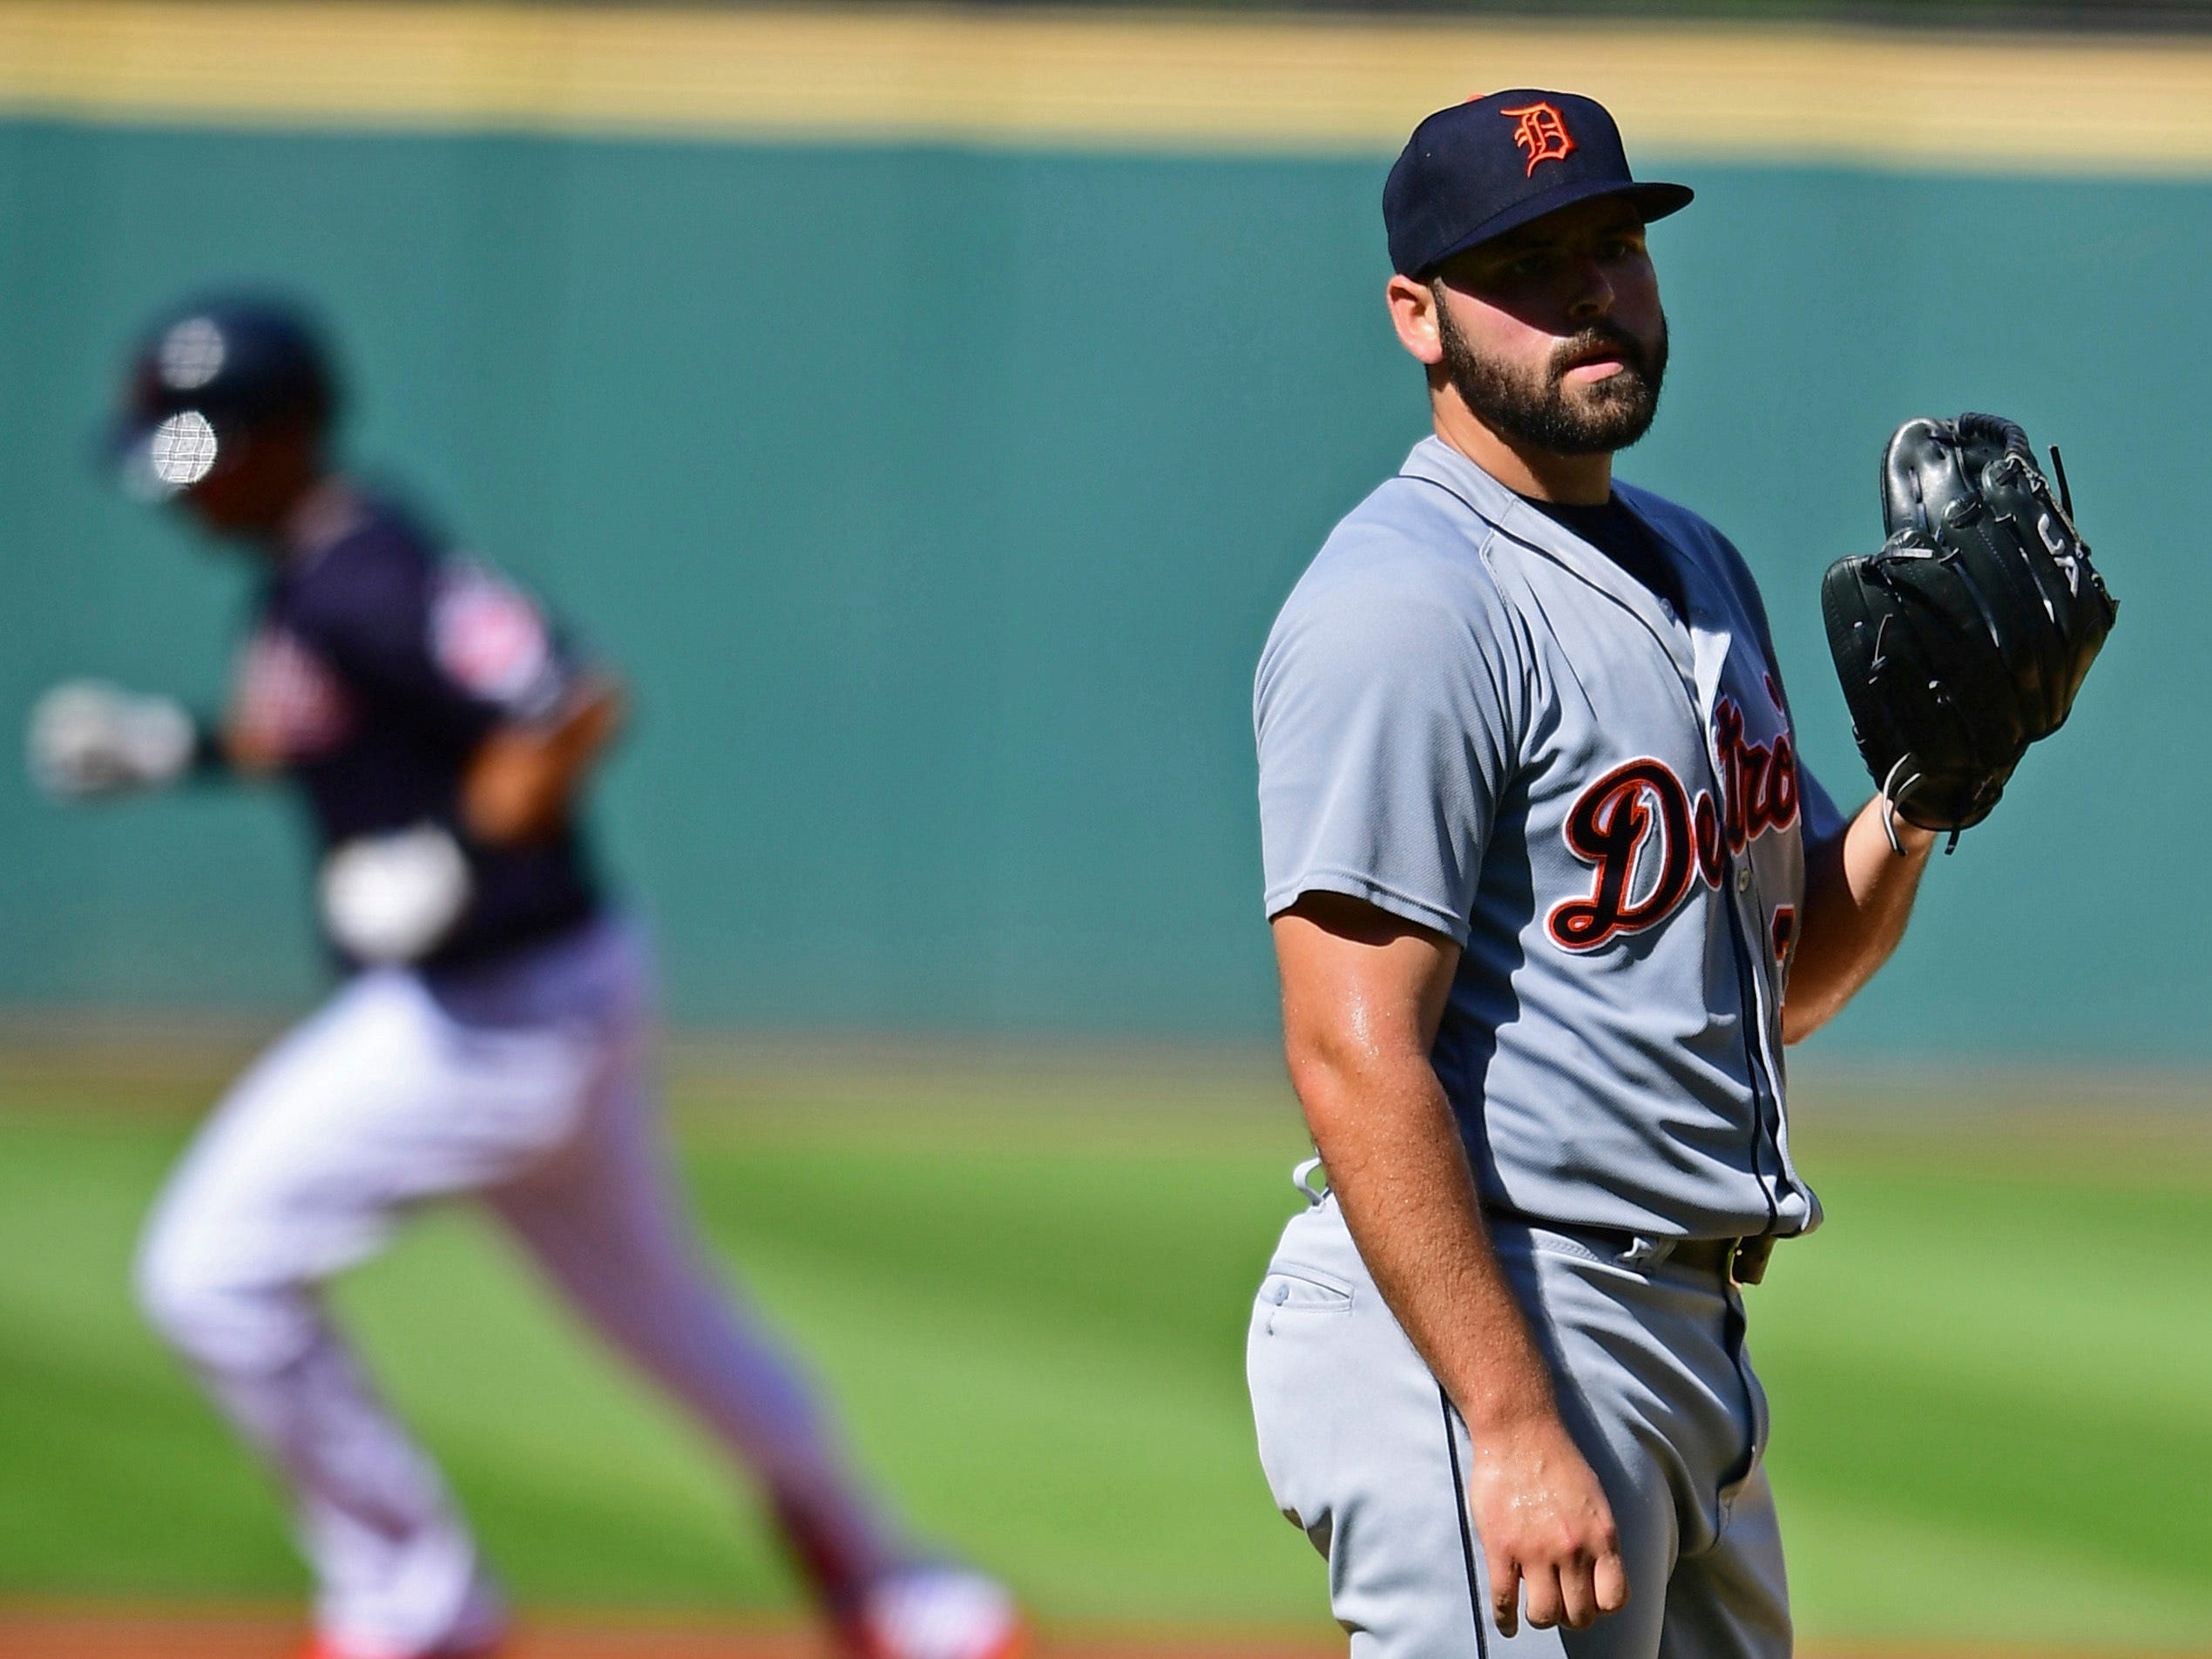 Tigers pitcher Michael Fulmer waits for Indians right fielder Michael Brantley to run the bases after hitting a solo home run in the first inning on Saturday, Sept.15, 2018, in Cleveland.